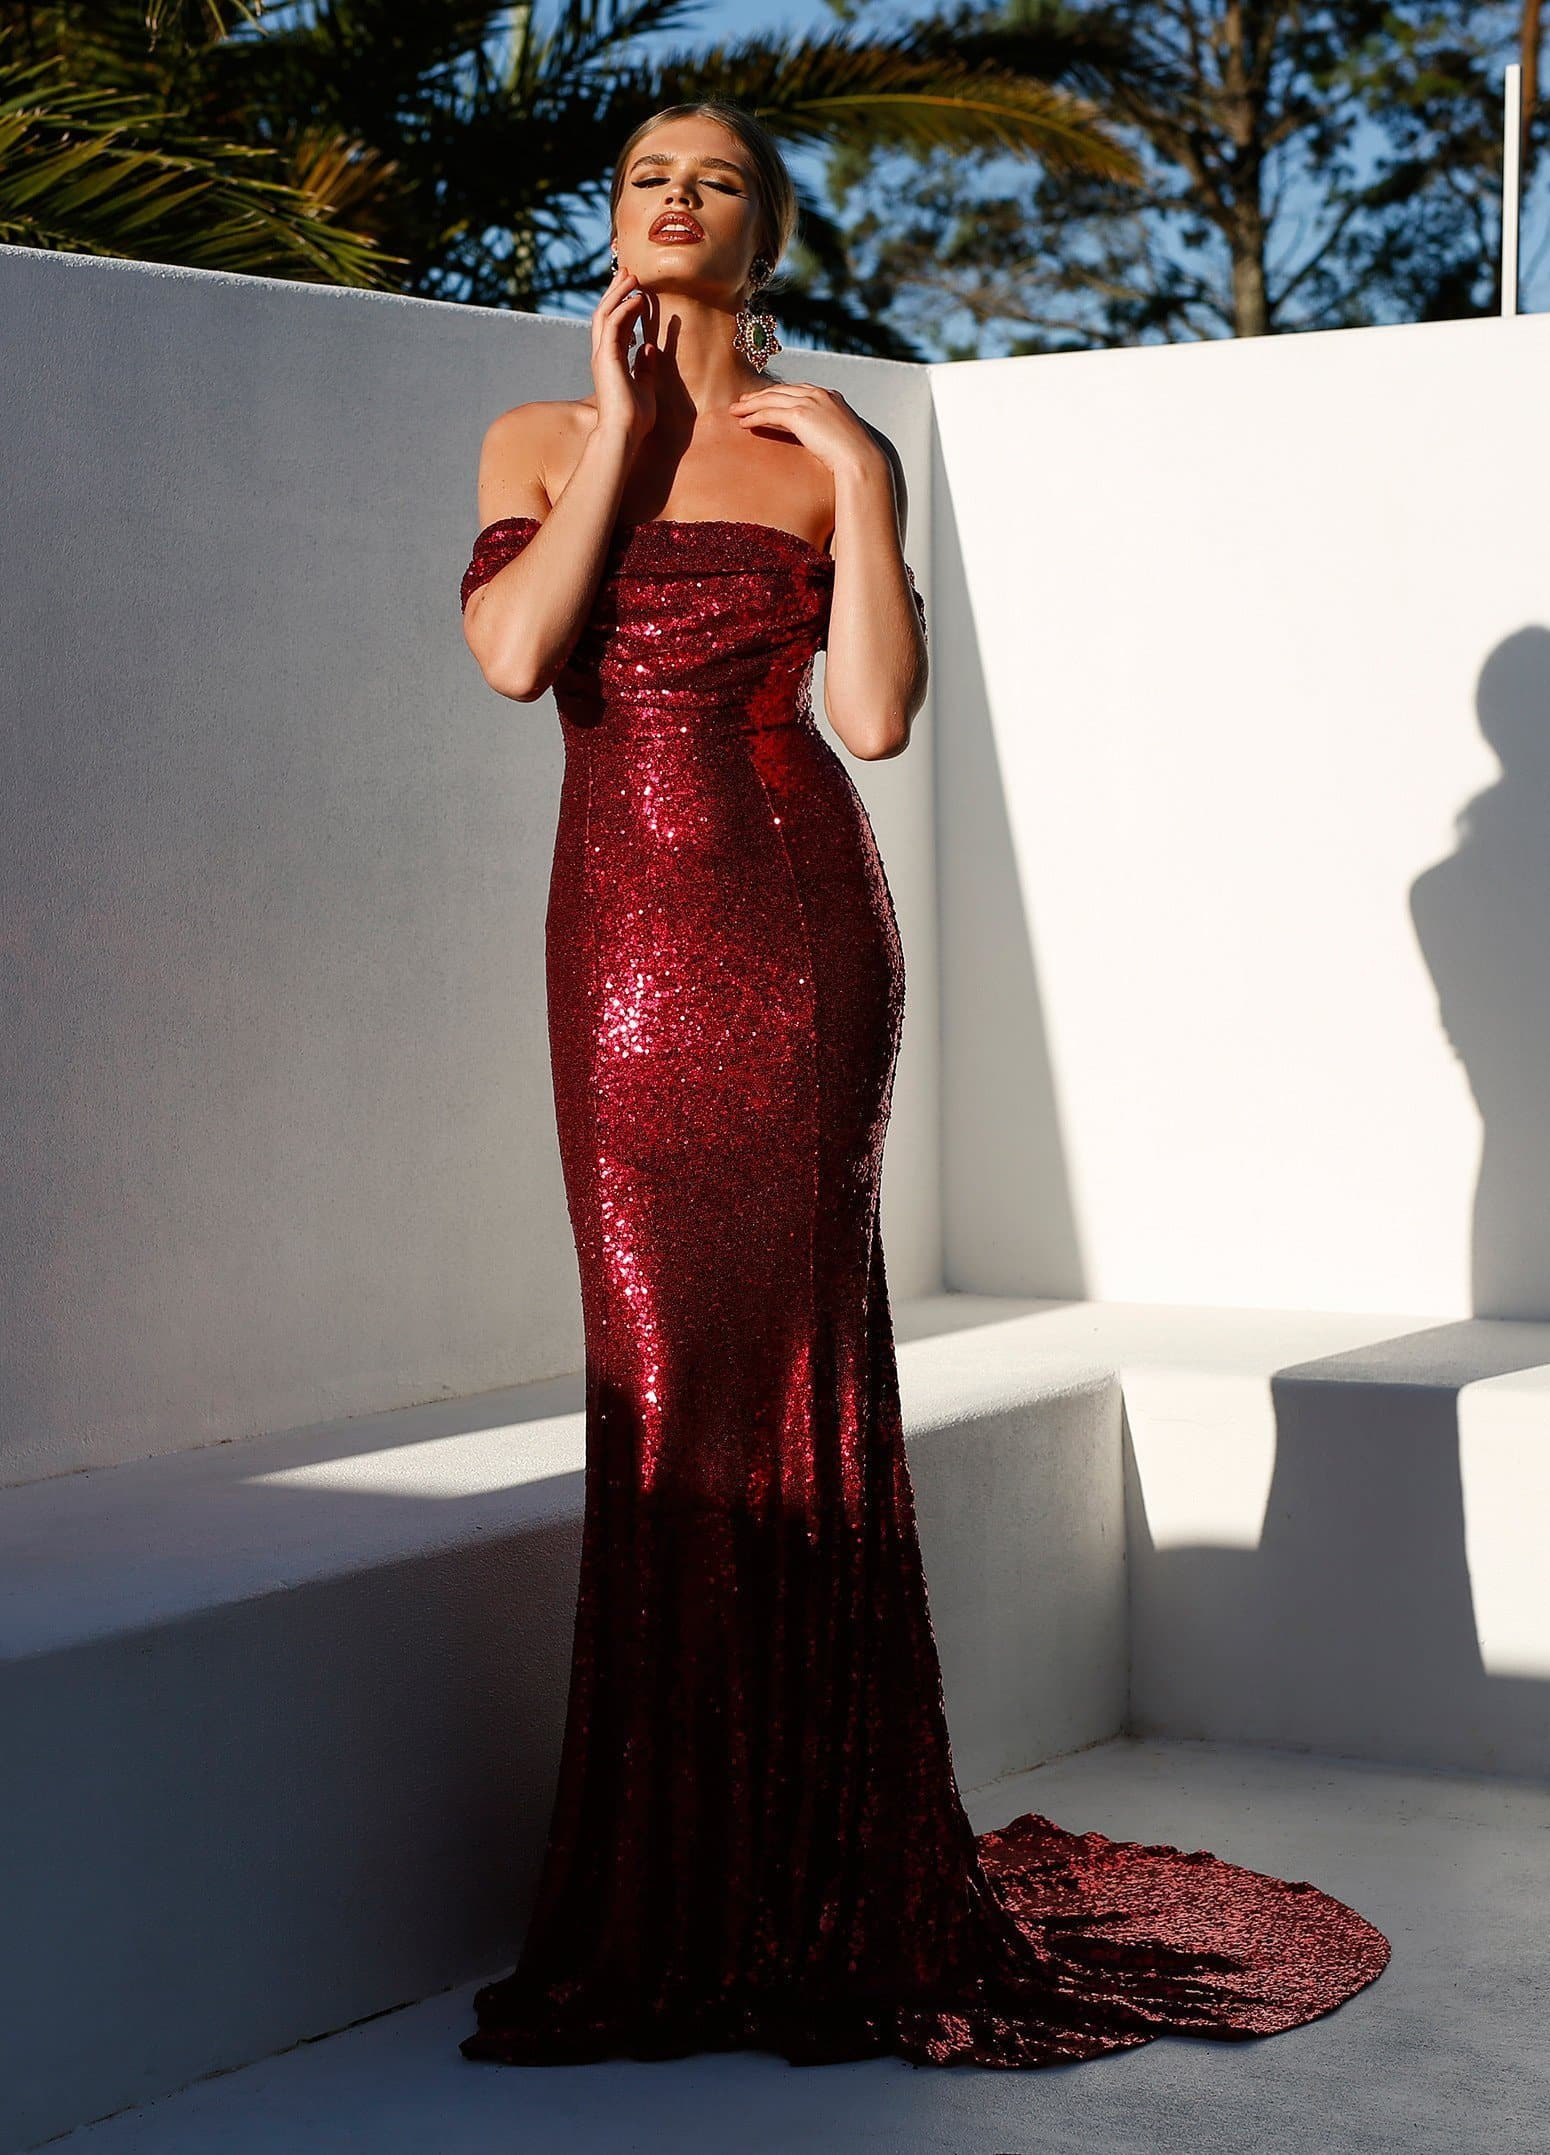 838260a18027 Silicya - Wine Red Sequin Gown with Off-Shoulder Sleeves – A&N Luxe ...